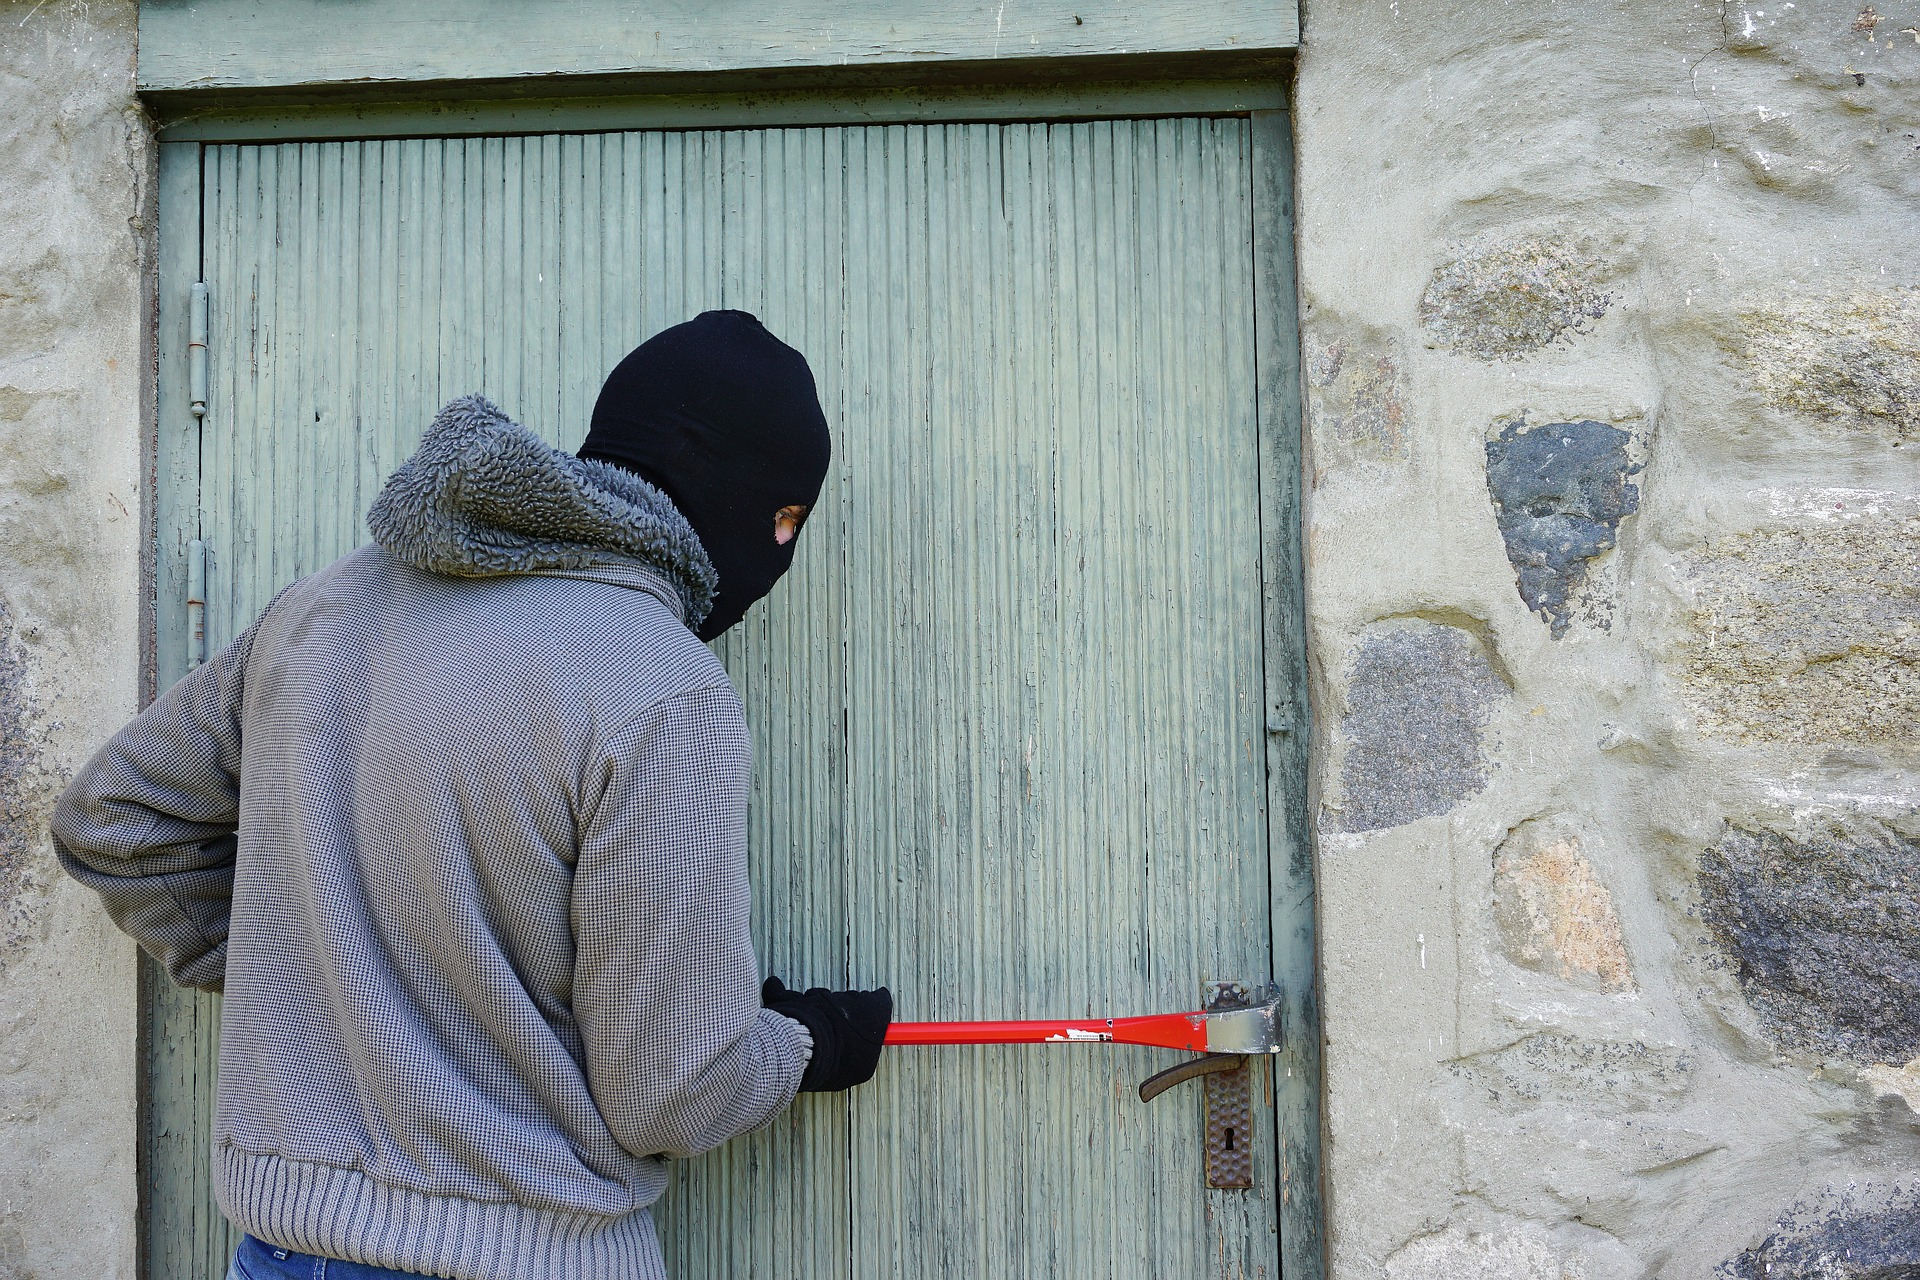 crime increase over the holidays - hooded person using crowbar to force open a door